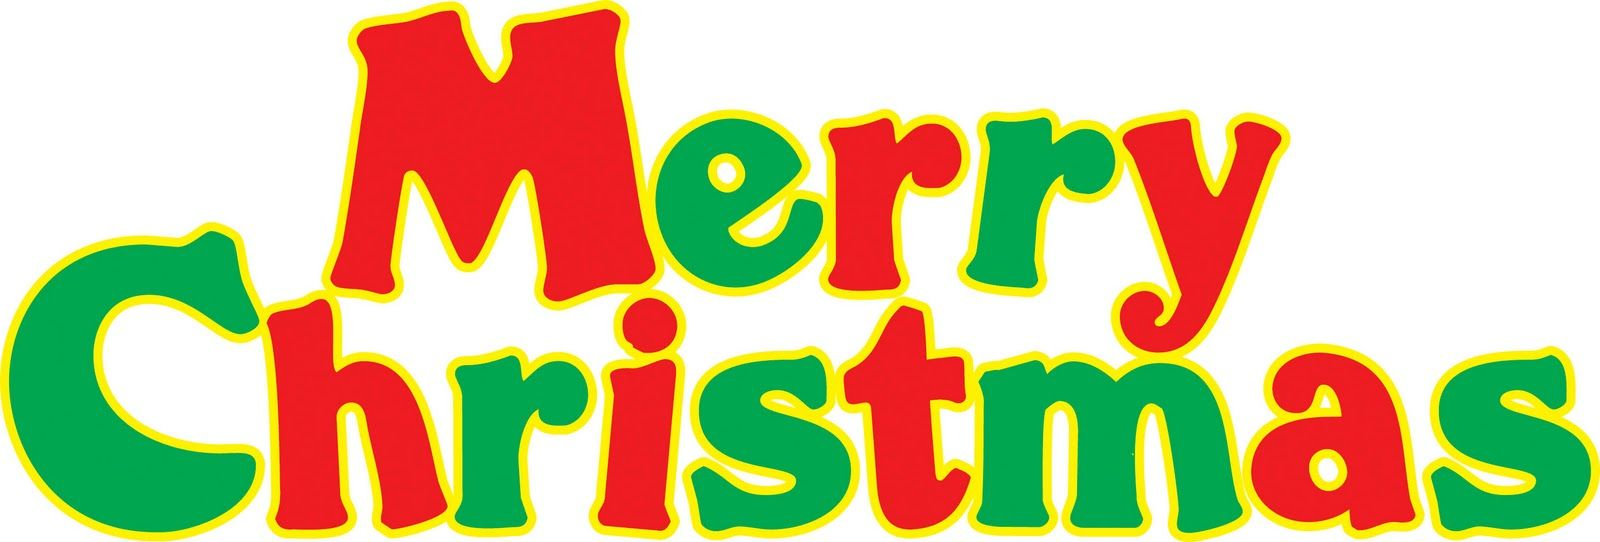 1600x542 Merry Christmas Clip Art Use These Free Images For Your Websites